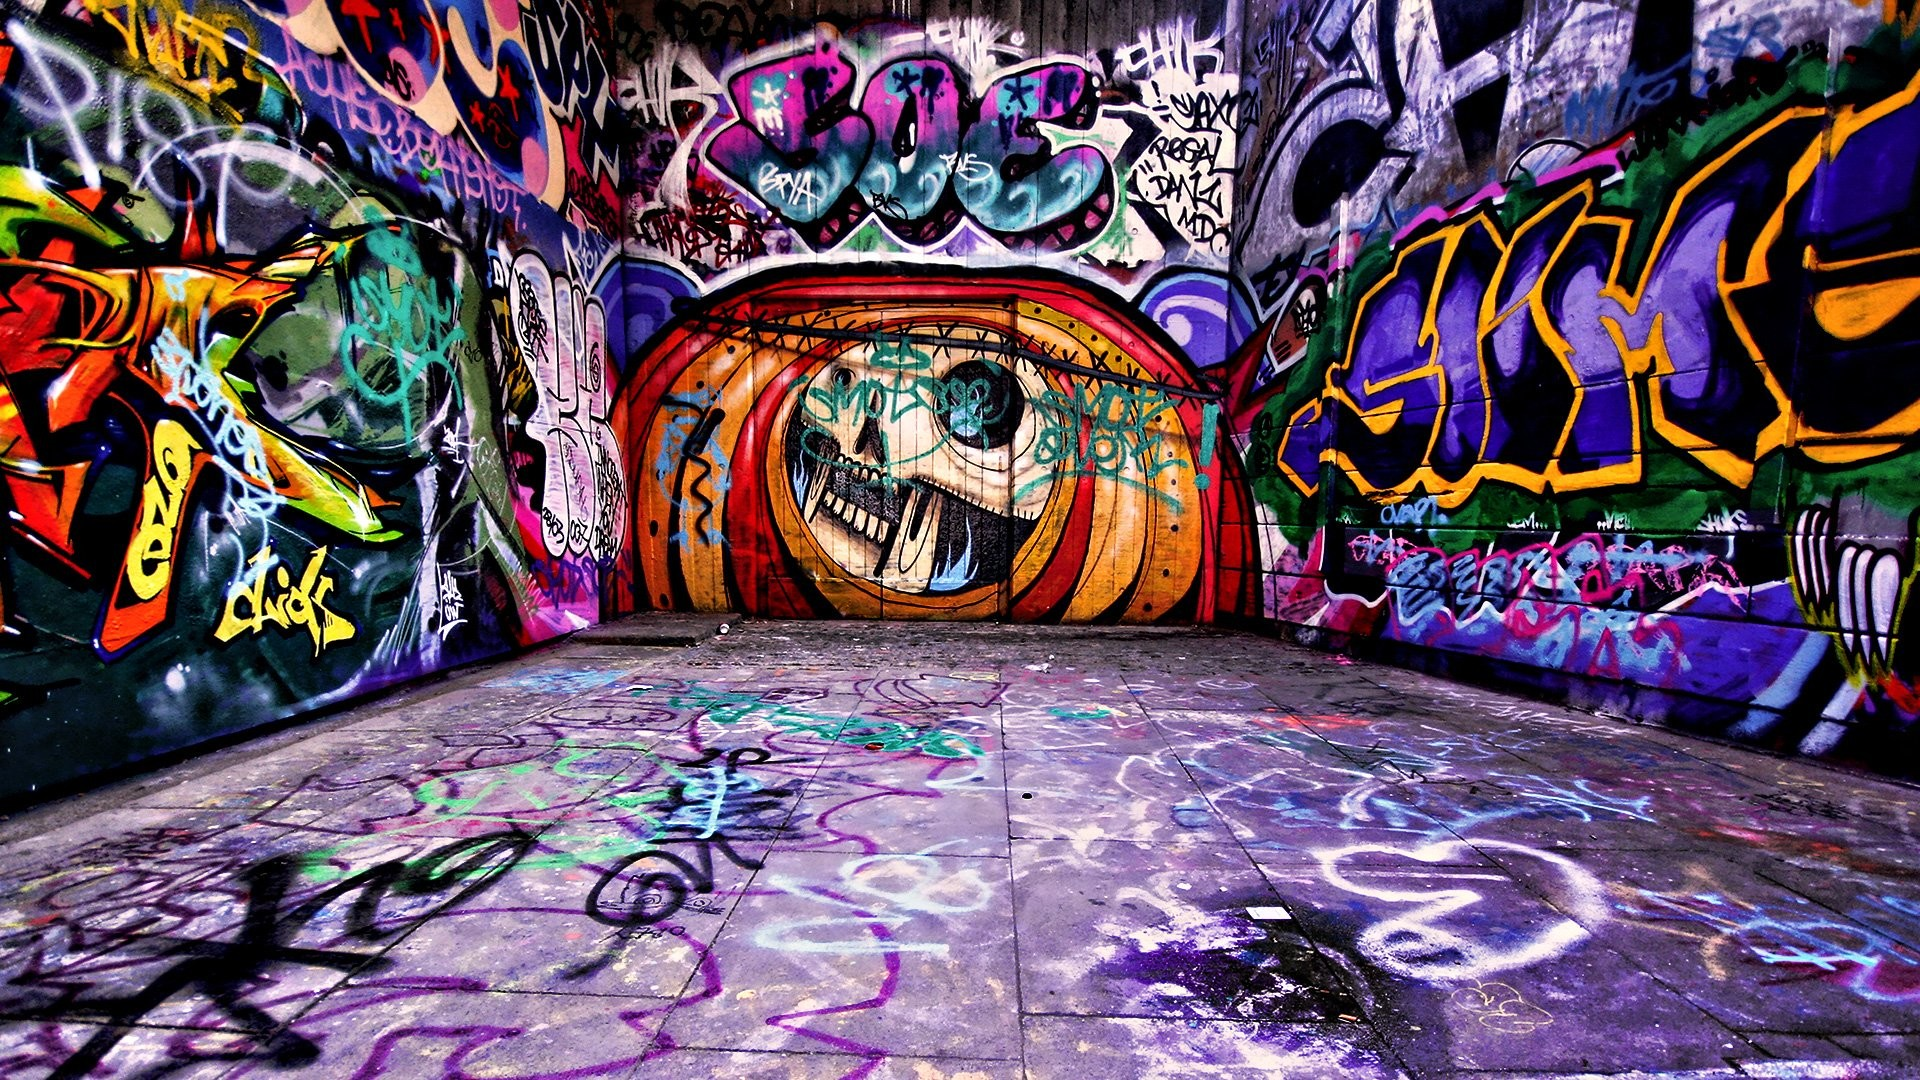 Samsung Galaxy S3 Graffiti Wallpapers HD, Desktop Backgrounds 720×1280 |  Download Wallpaper | Pinterest | Graffiti wallpaper, Wallpaper and Hd  desktop